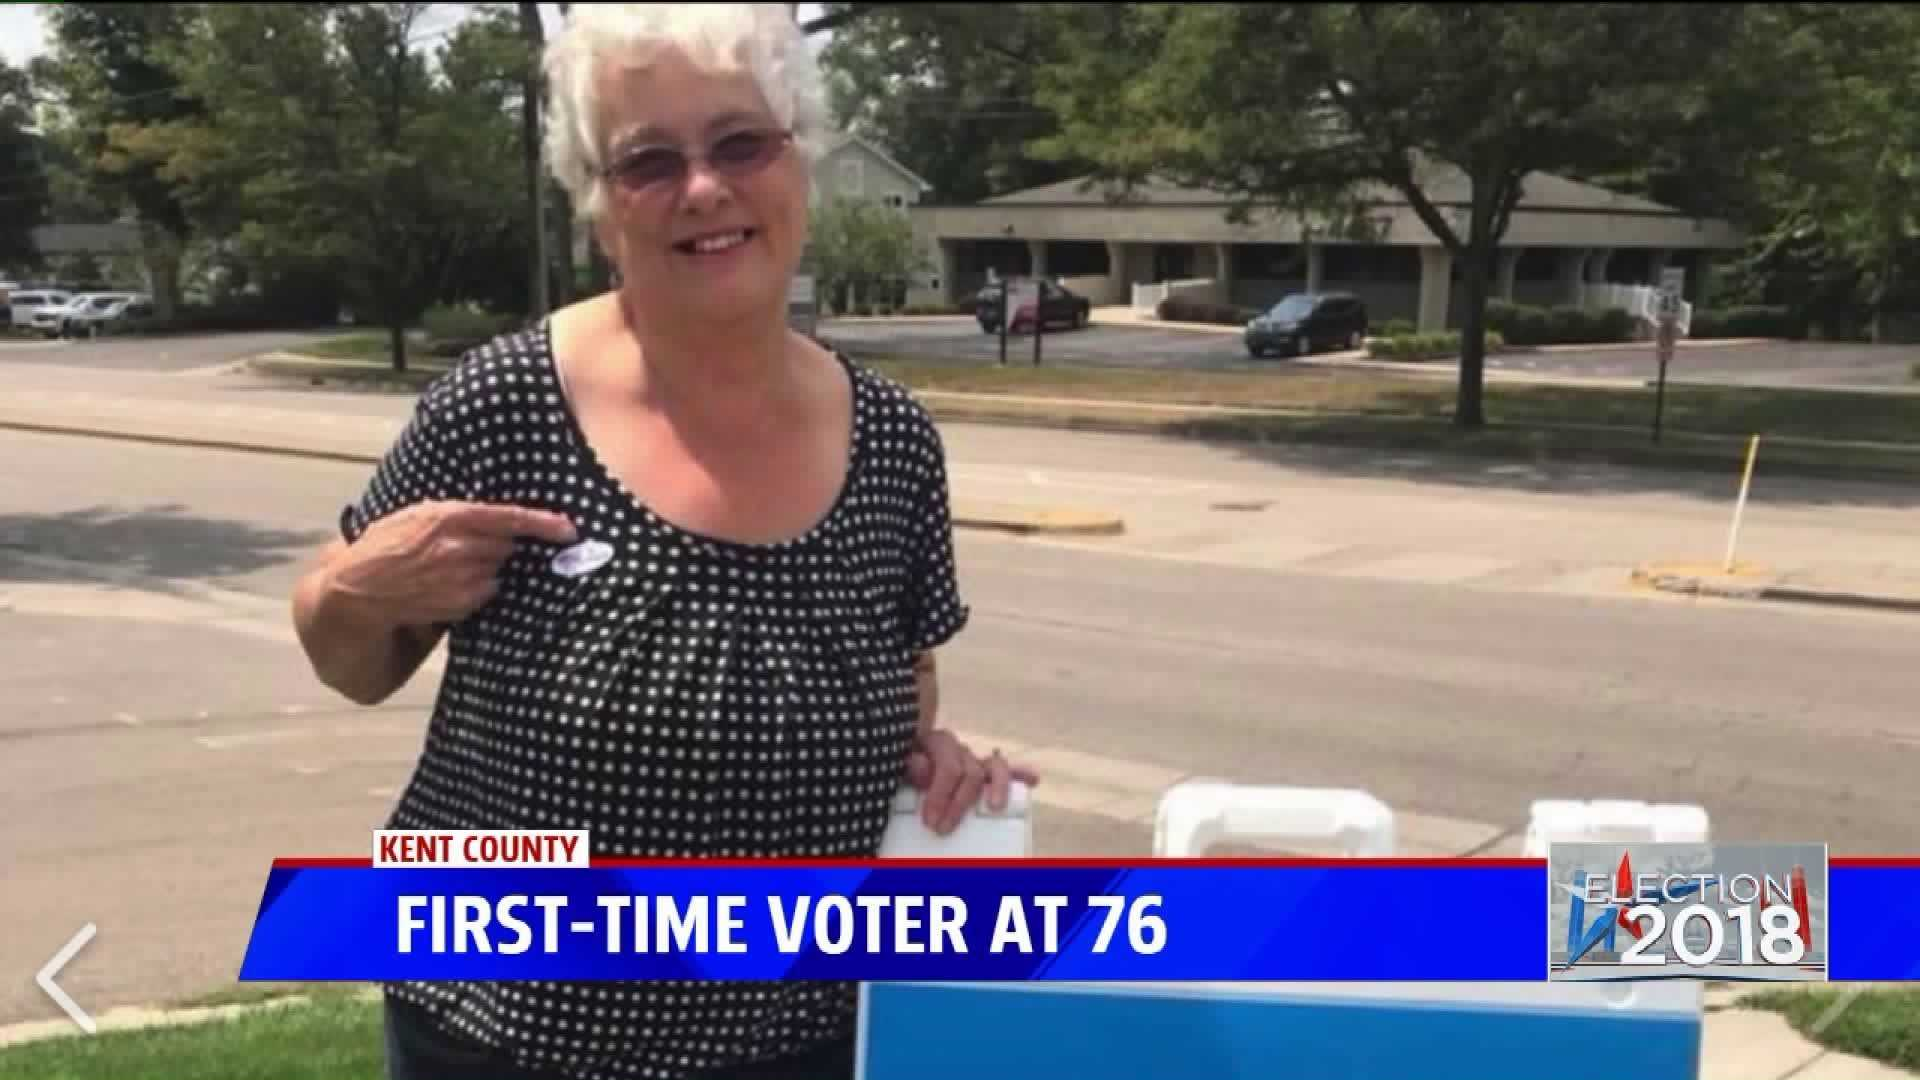 A West Michigan woman got to vote for the first time in the Michigan August primary election.